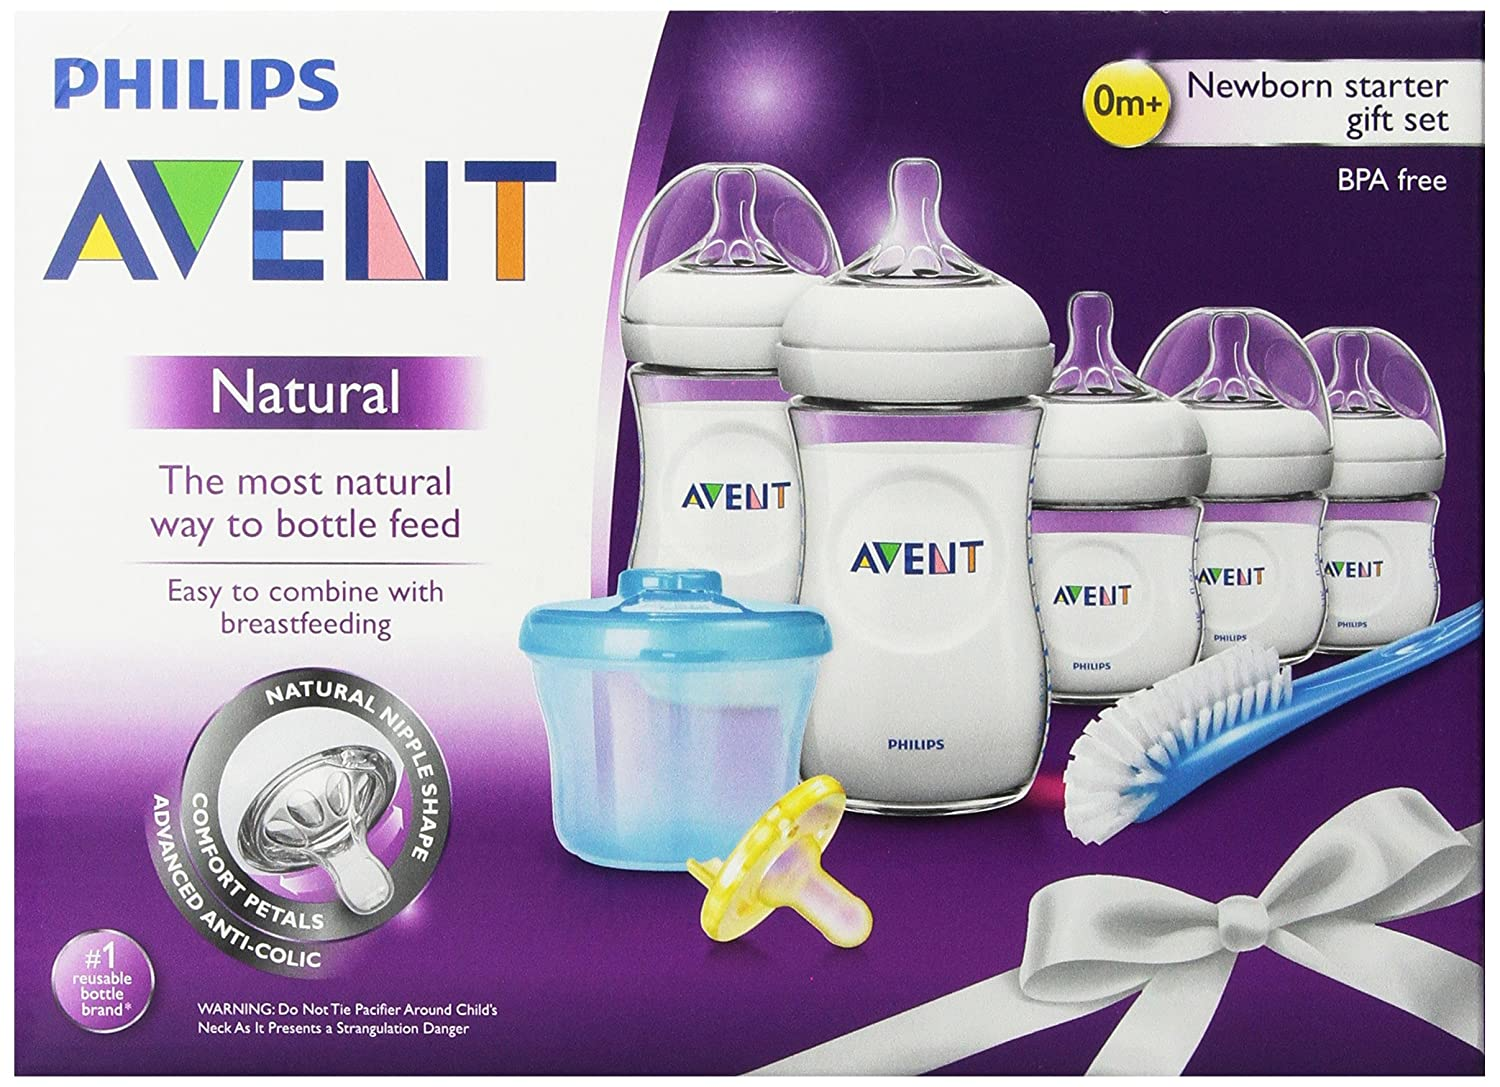 Philips Avent BPA Free Natural Infant Starter Gift Set